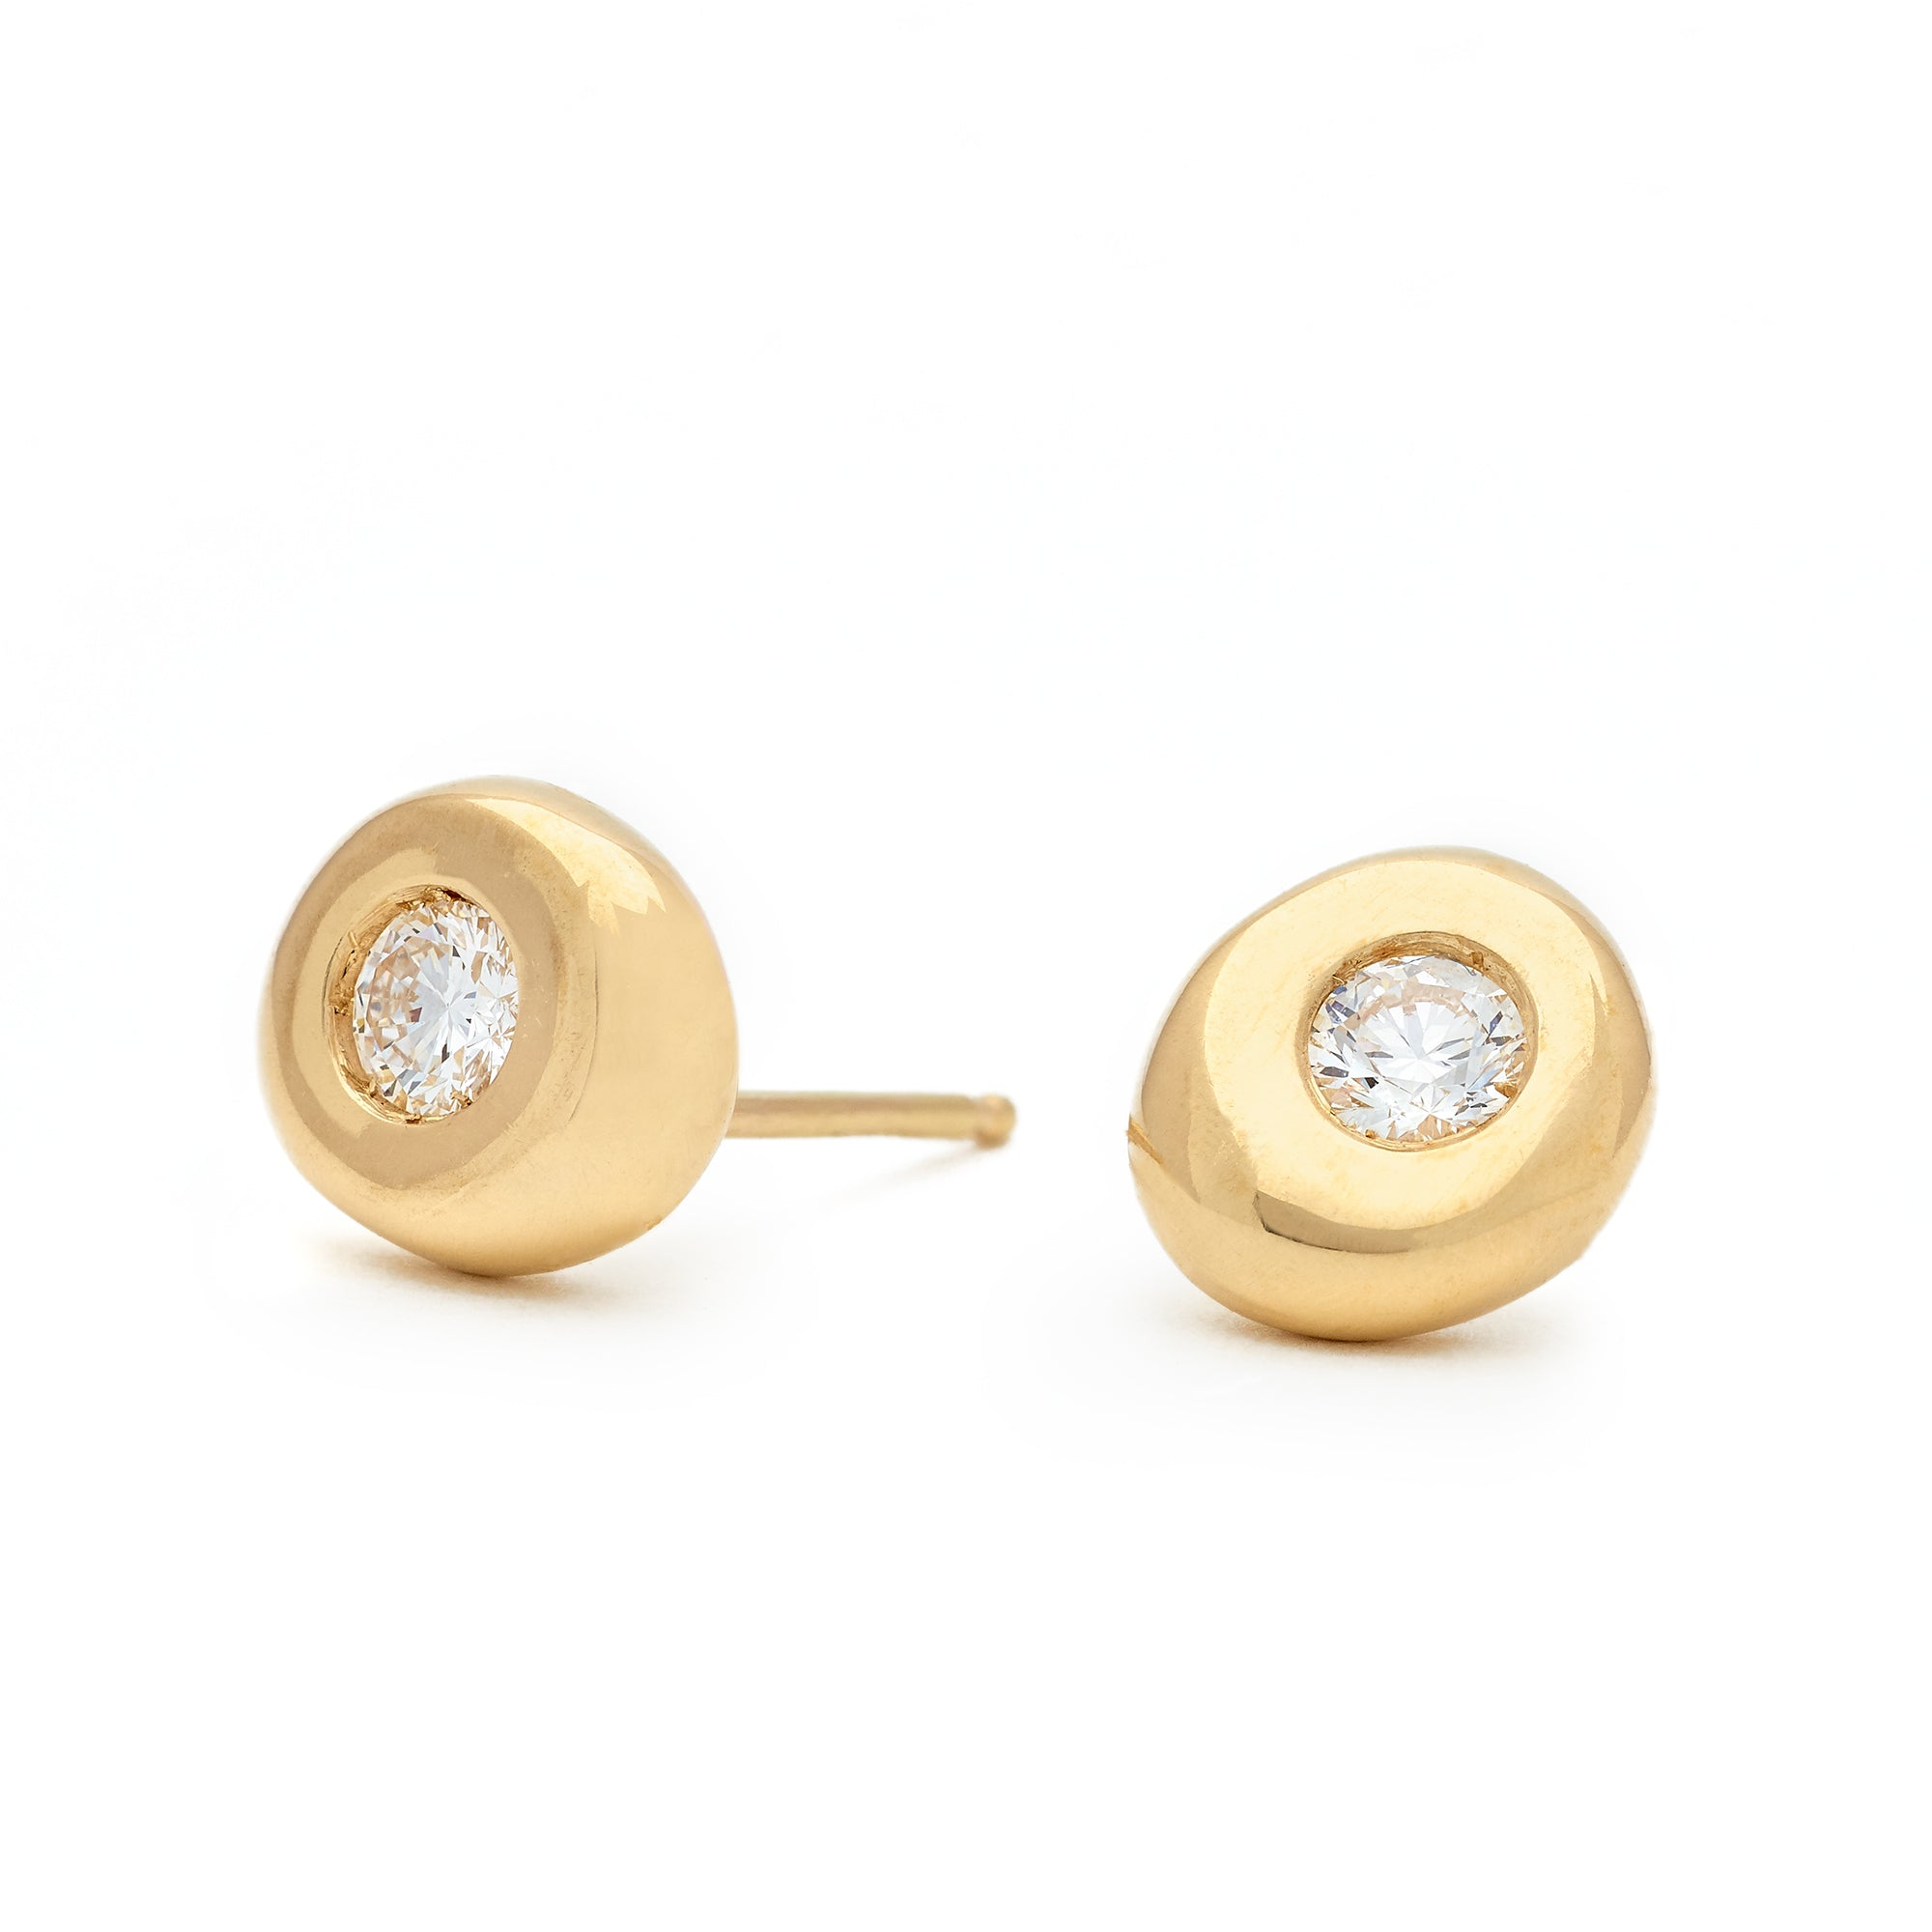 Berry Gold Stud Earrings - Johanna Brierley Jewellery Design